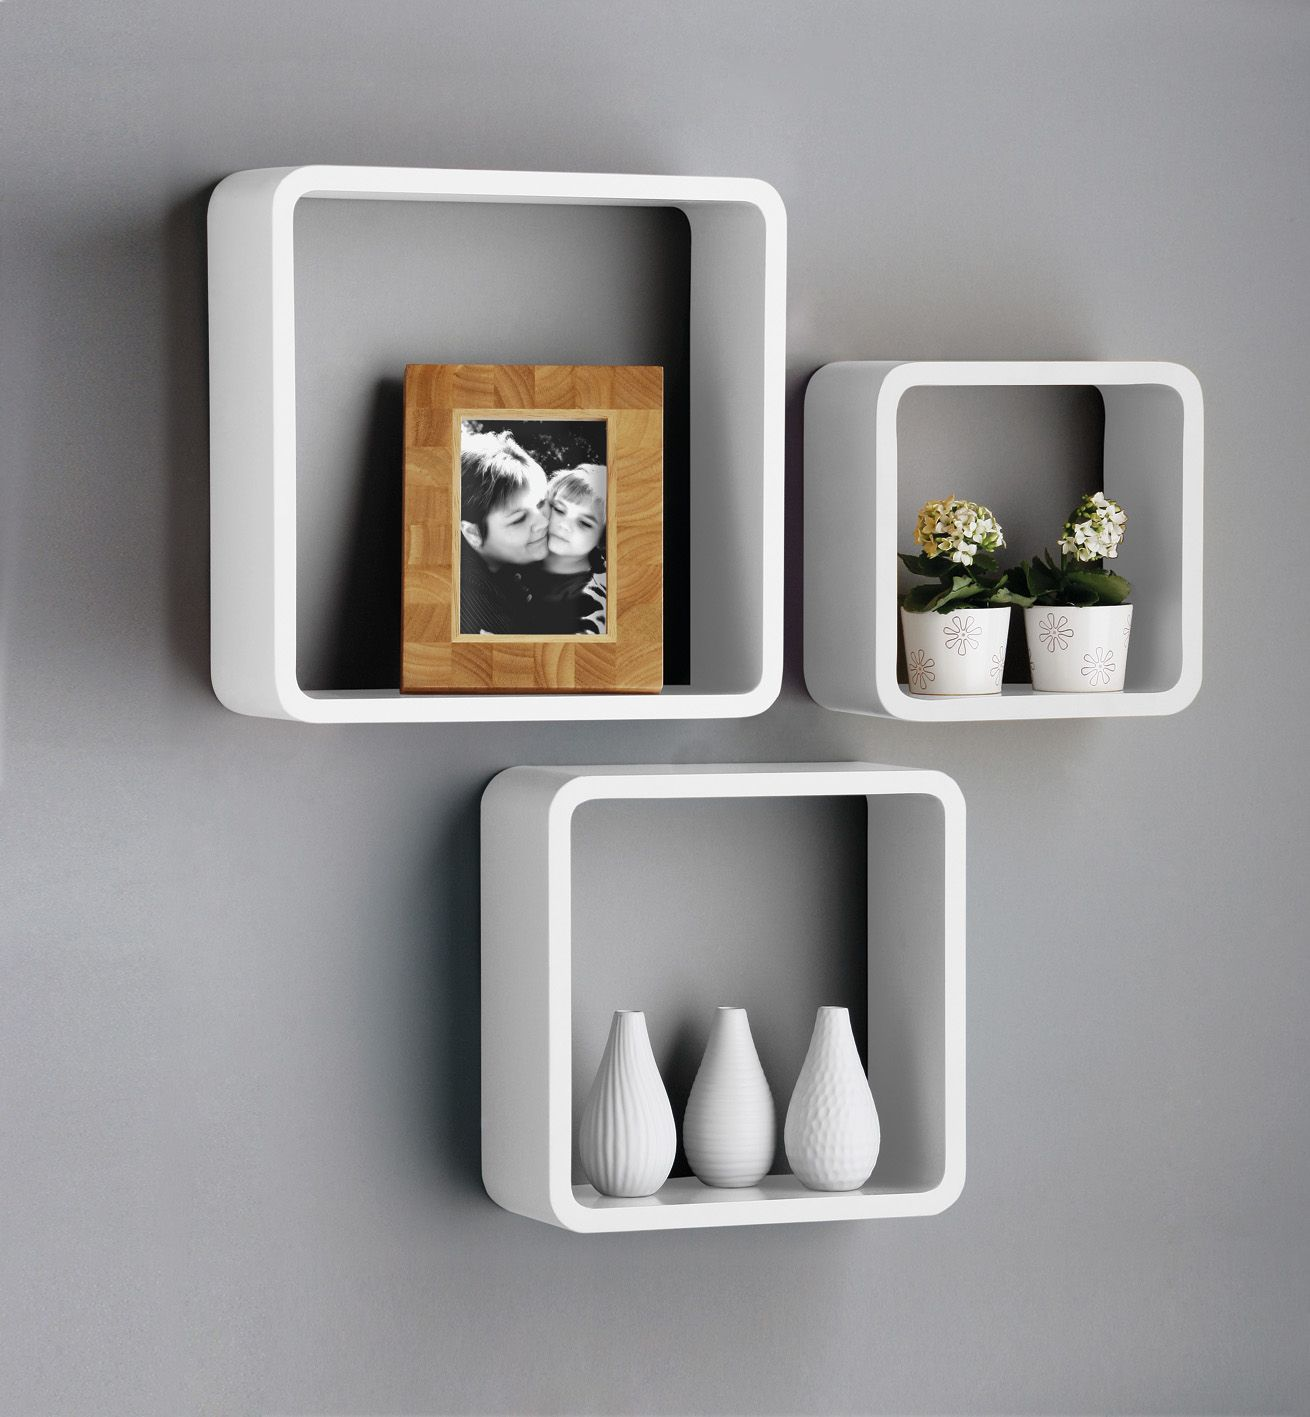 details about new set white black square floating cube wall oak shelves storage shelf cubes radiator modern over the toilet entryway organizer shoe stand ikea narrow shelving unit